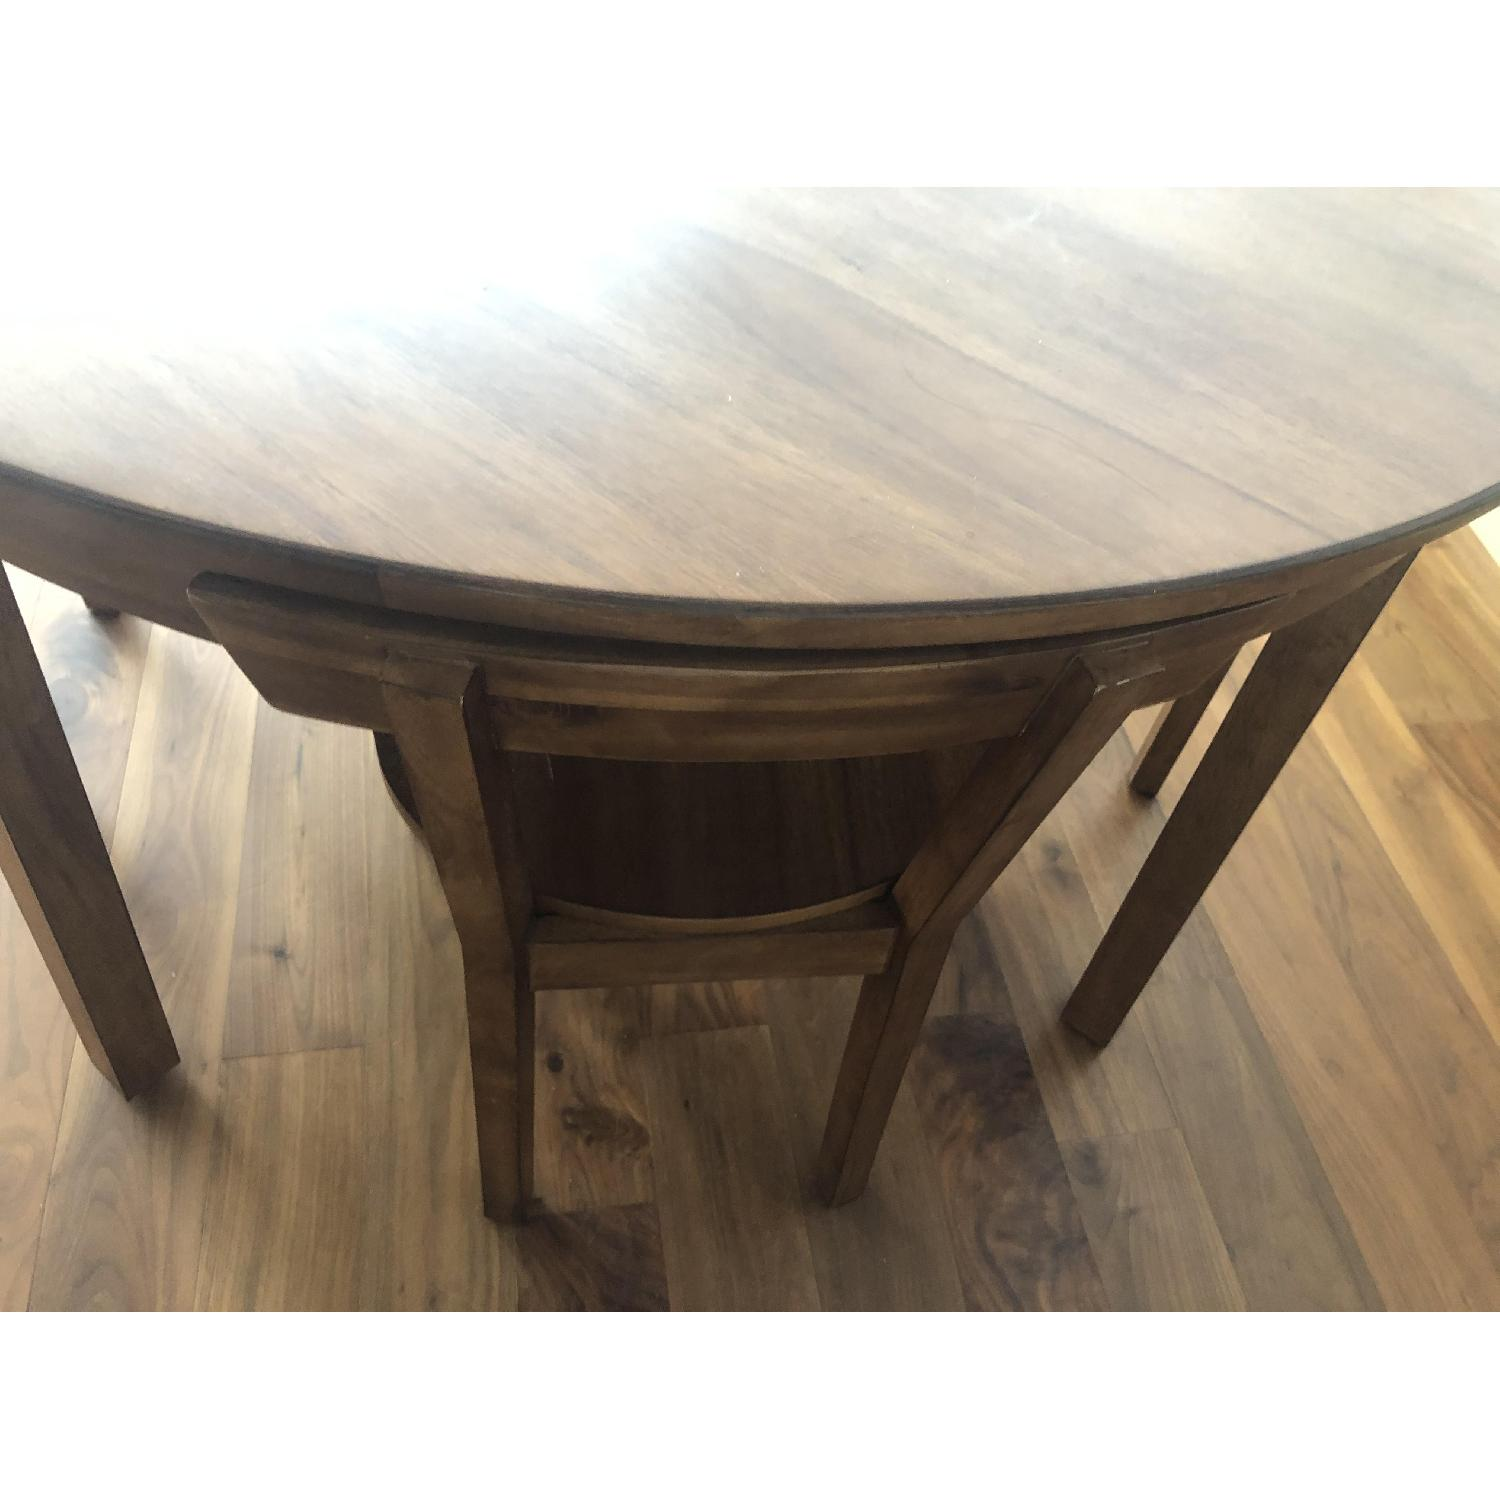 CB2 Claremont Round Wood Dining Table-1